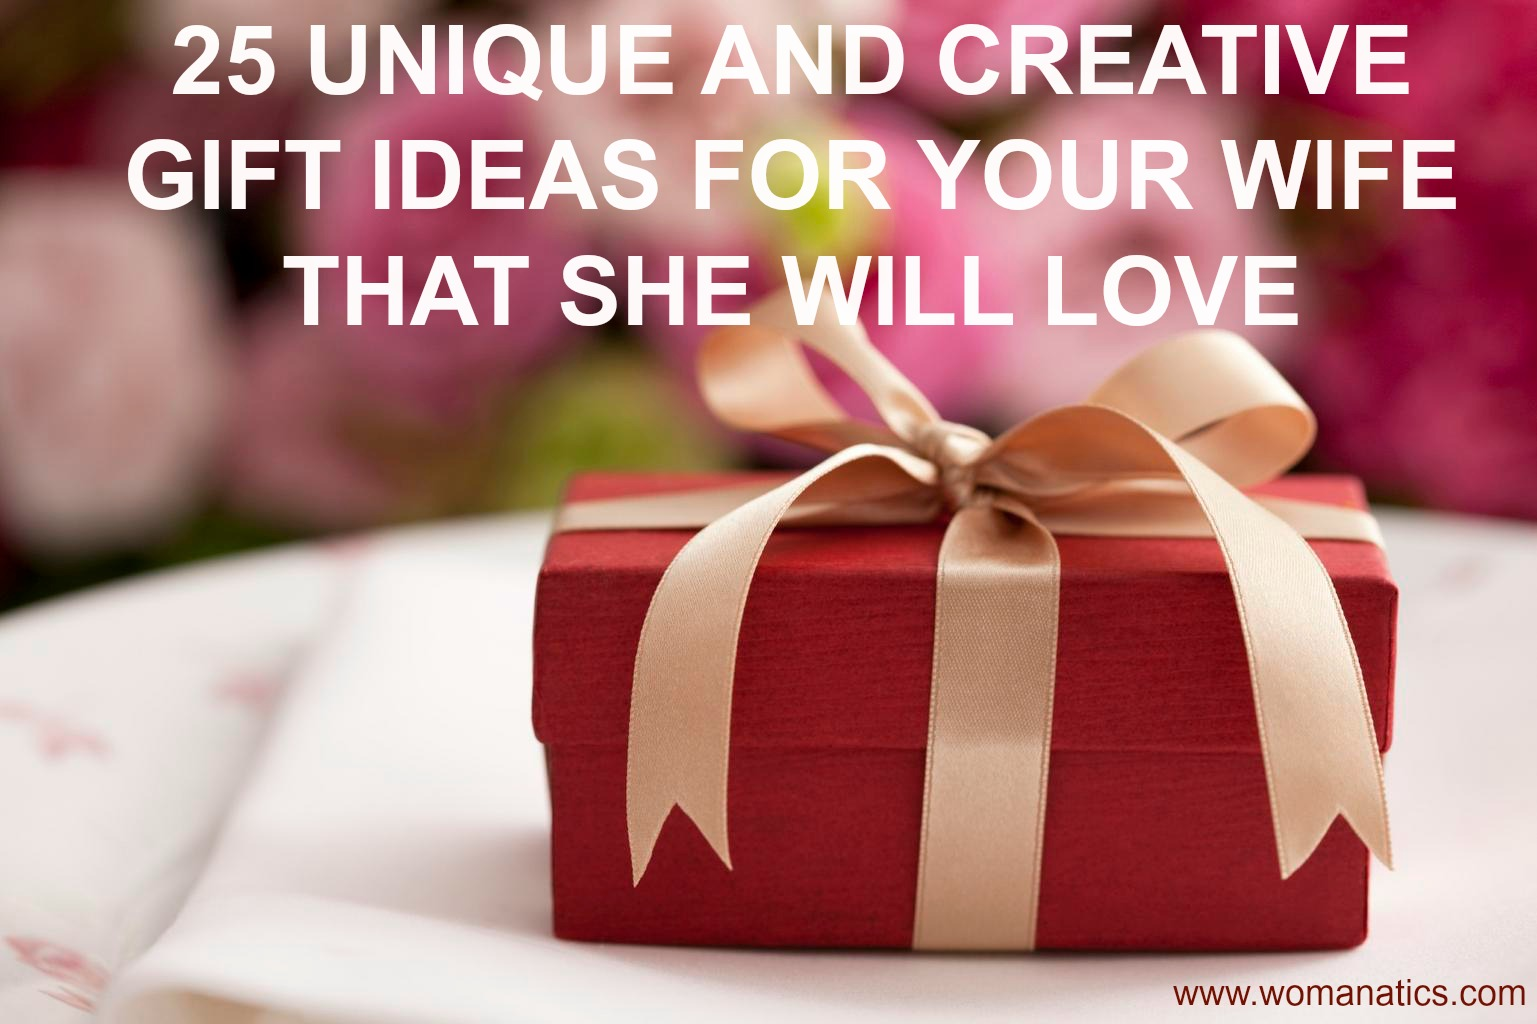 25 Unique And Creative Gift Ideas For Your Wife That She Will Love